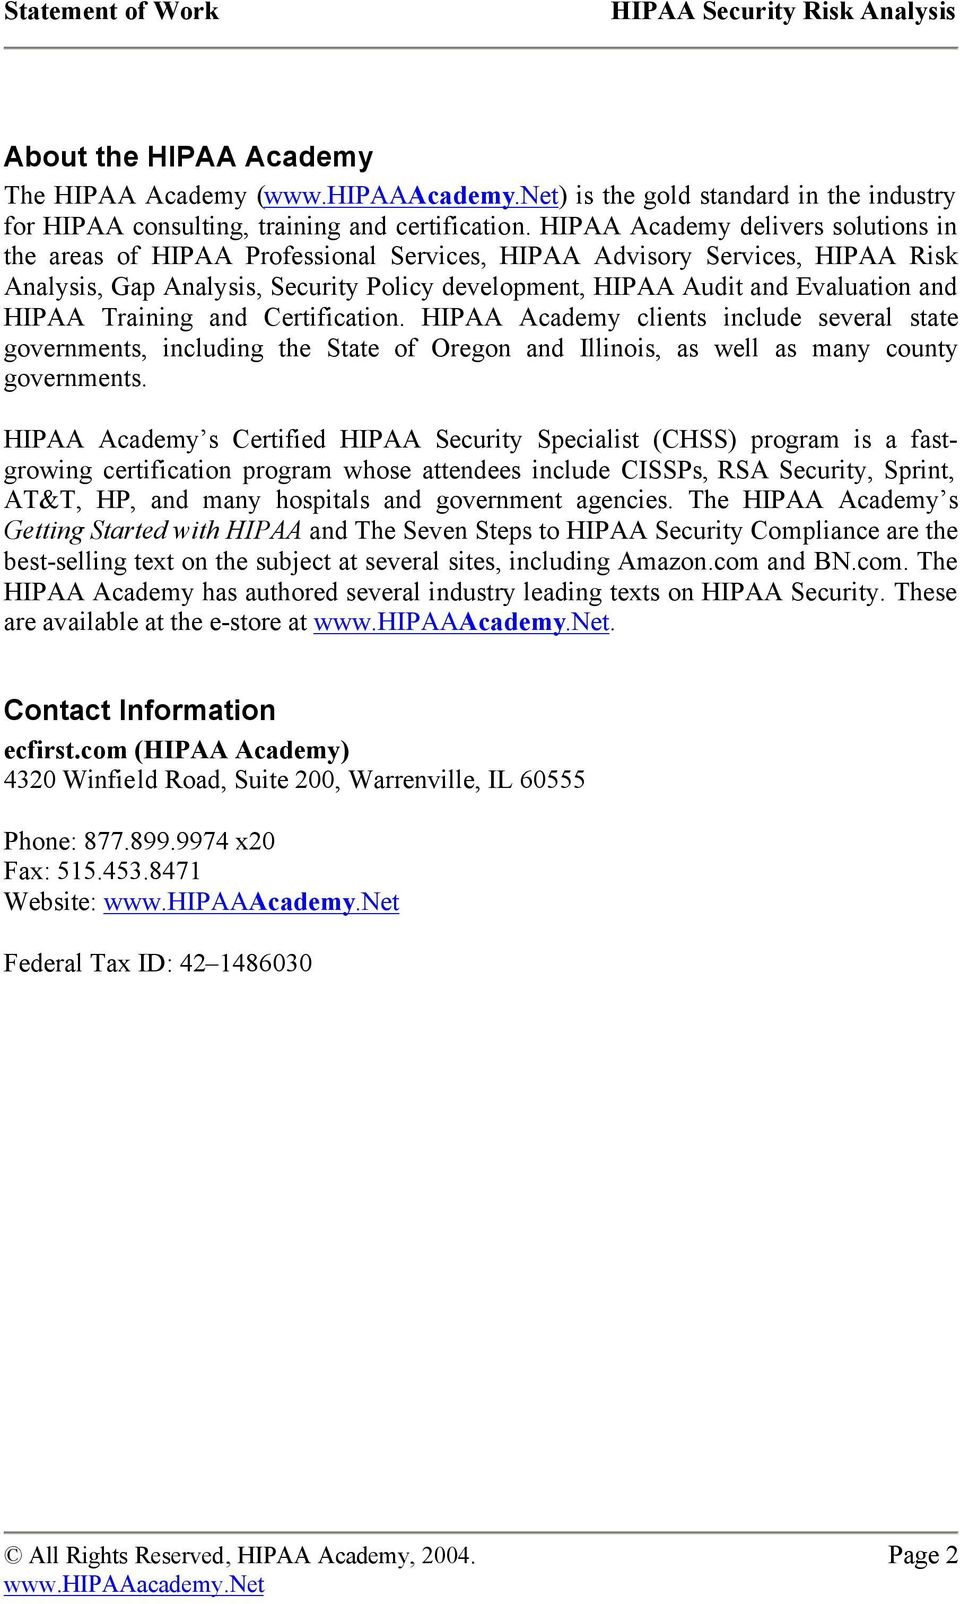 STATEMENT OF WORK FOR HIPAA SECURITY RISK ANALYSIS PDF